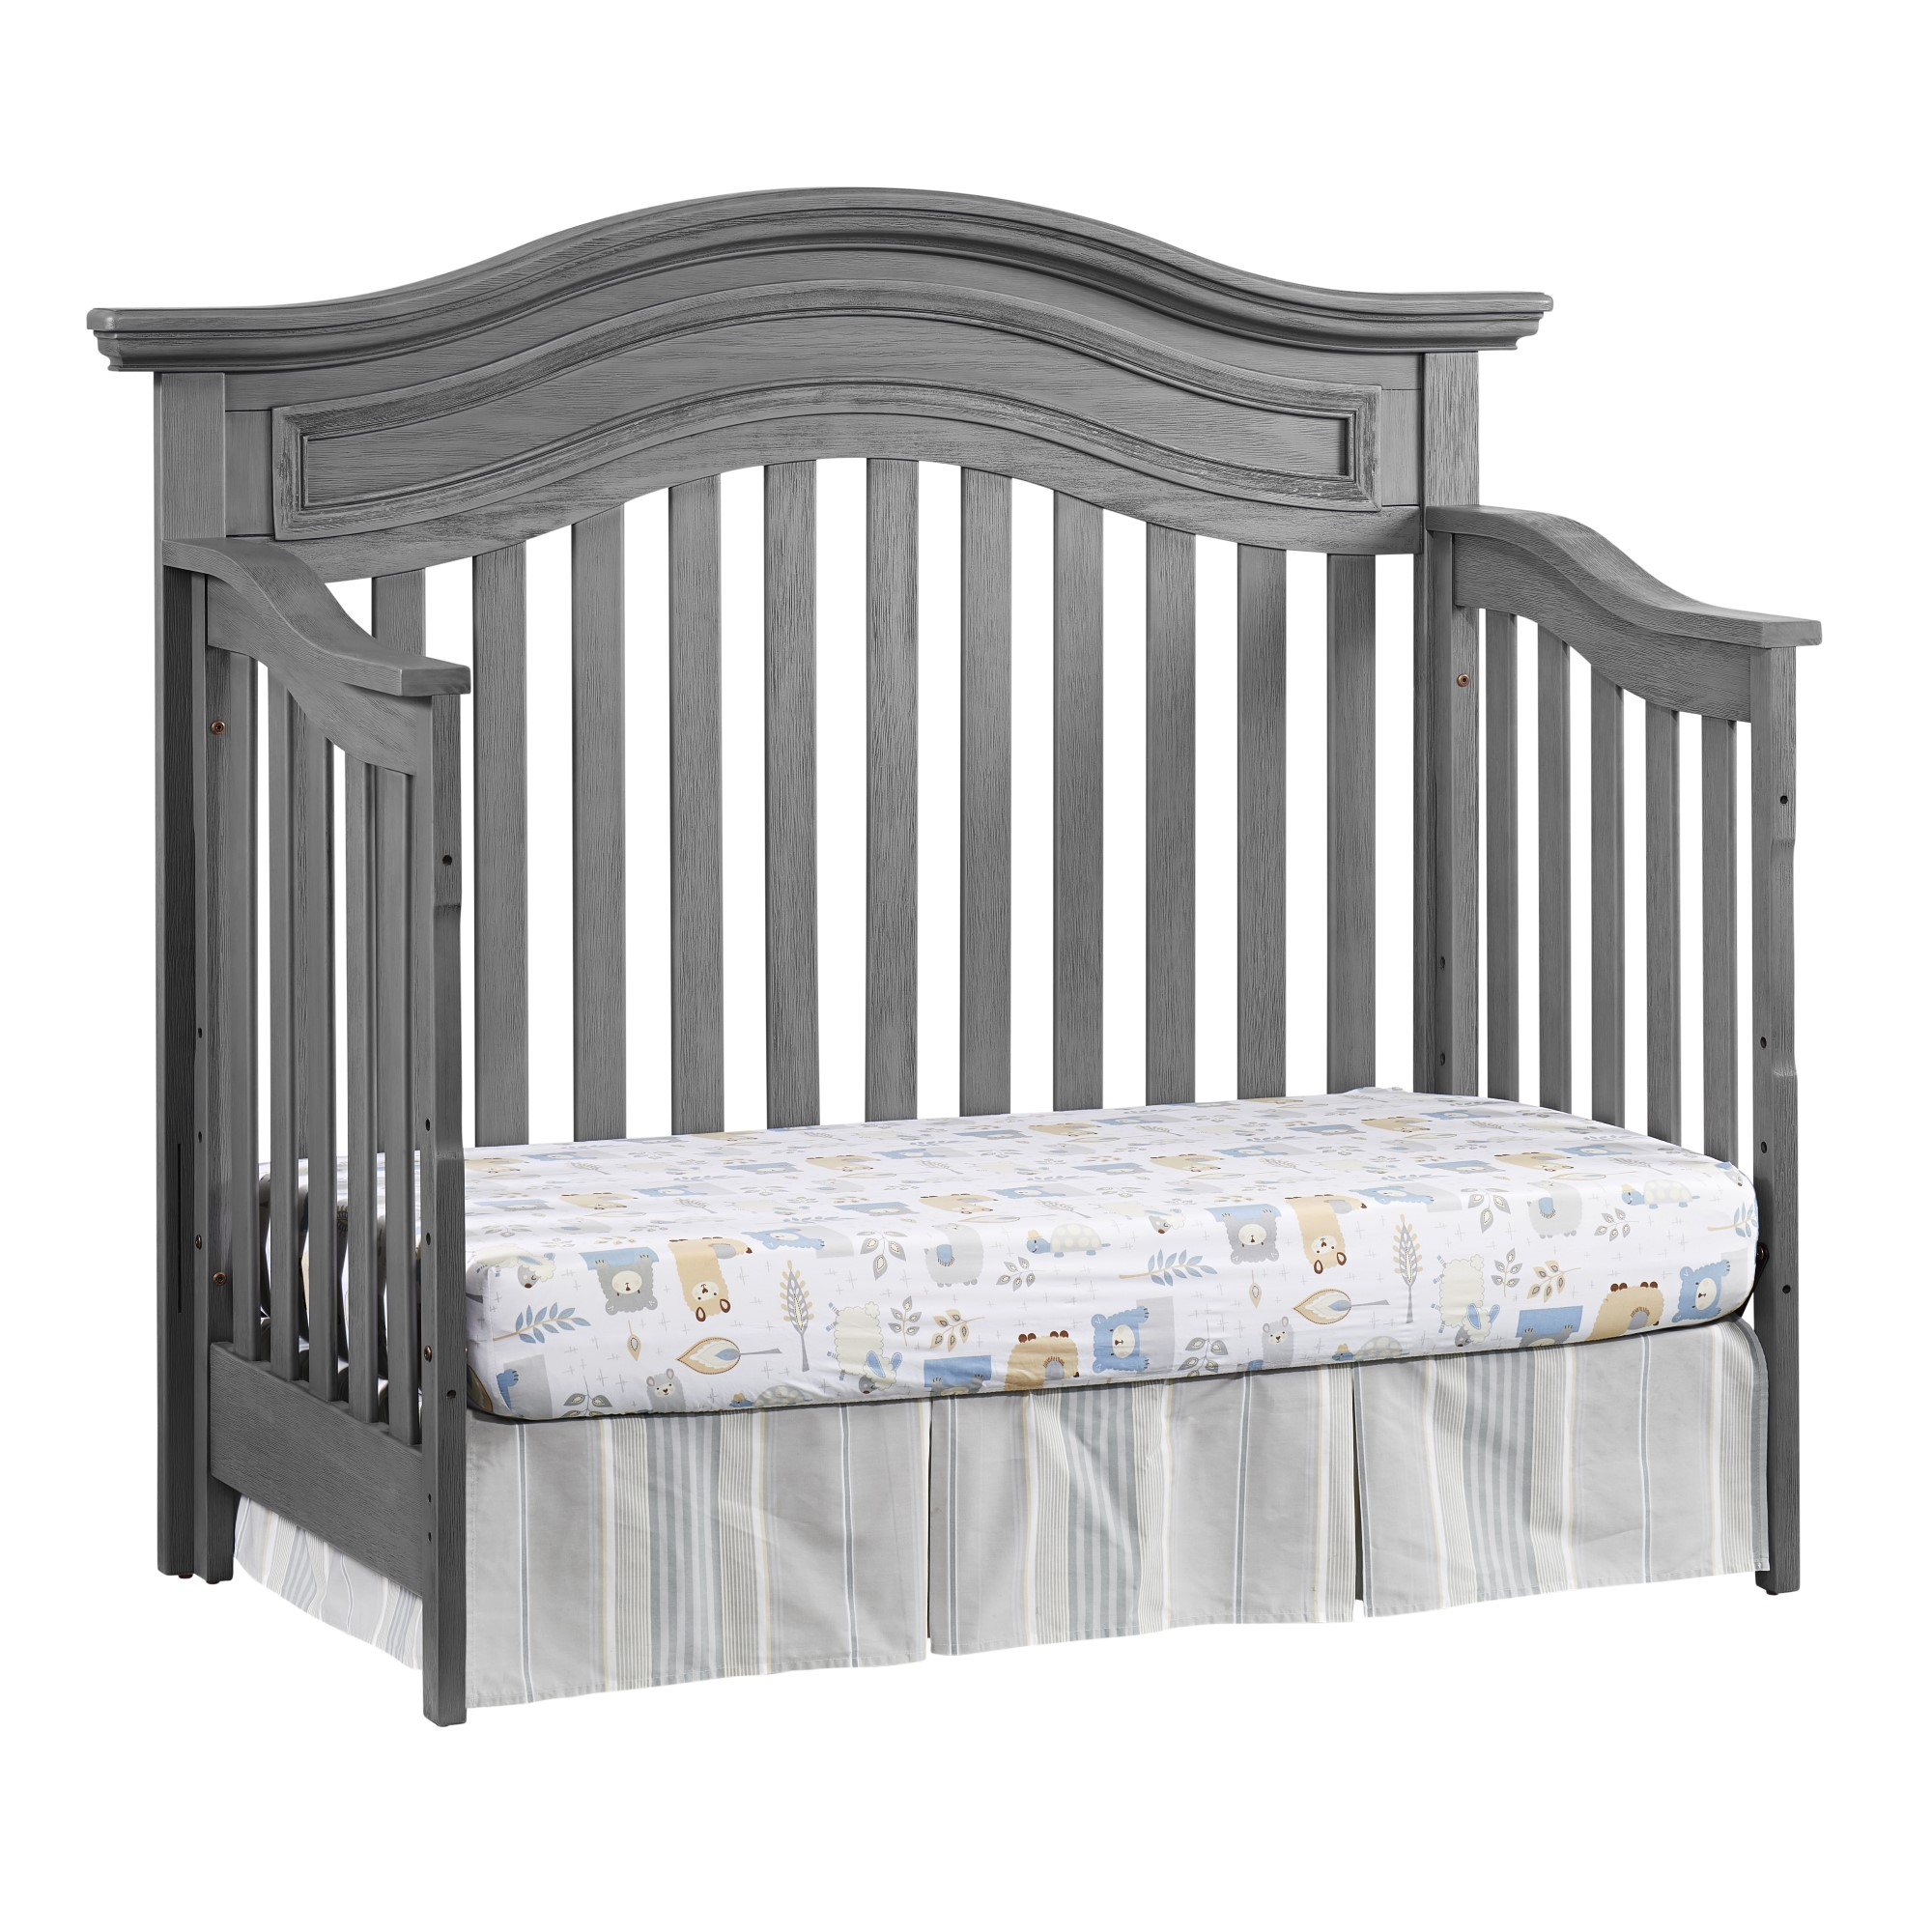 4 In 1 Convertible Crib Glenbrook Graphite Gray Oxford